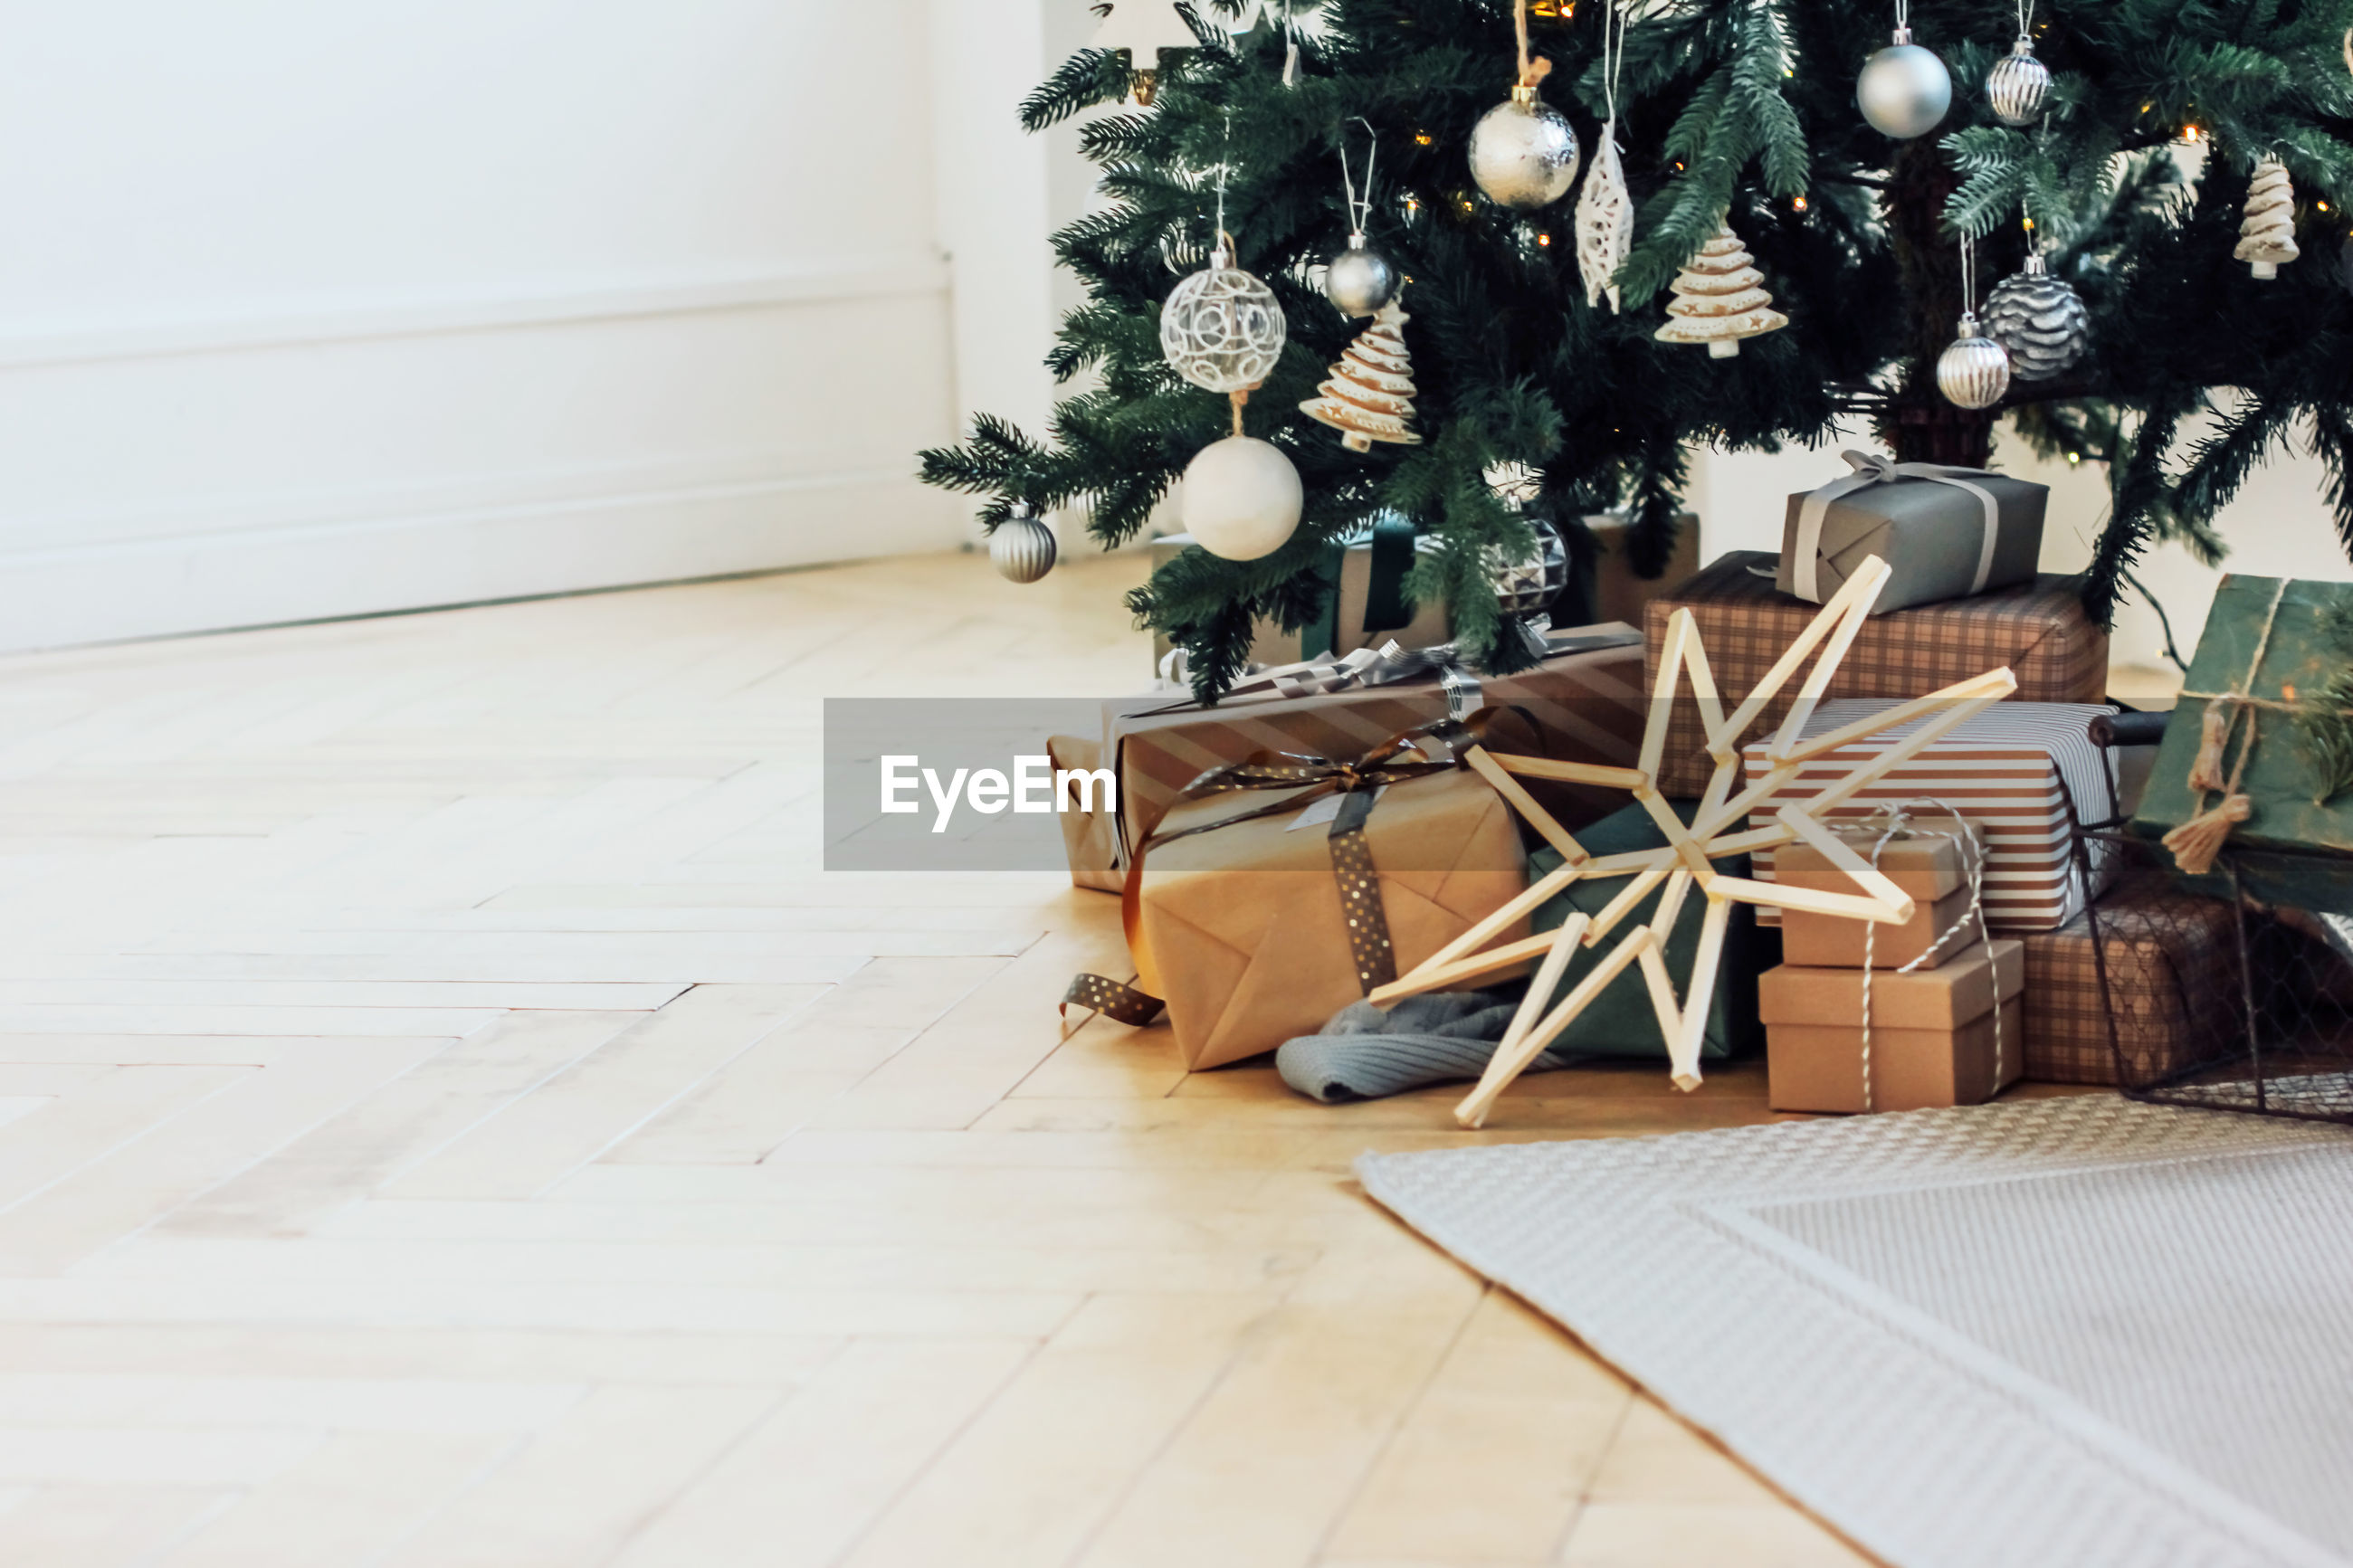 Christmas tree by gifts on hardwood floor at home